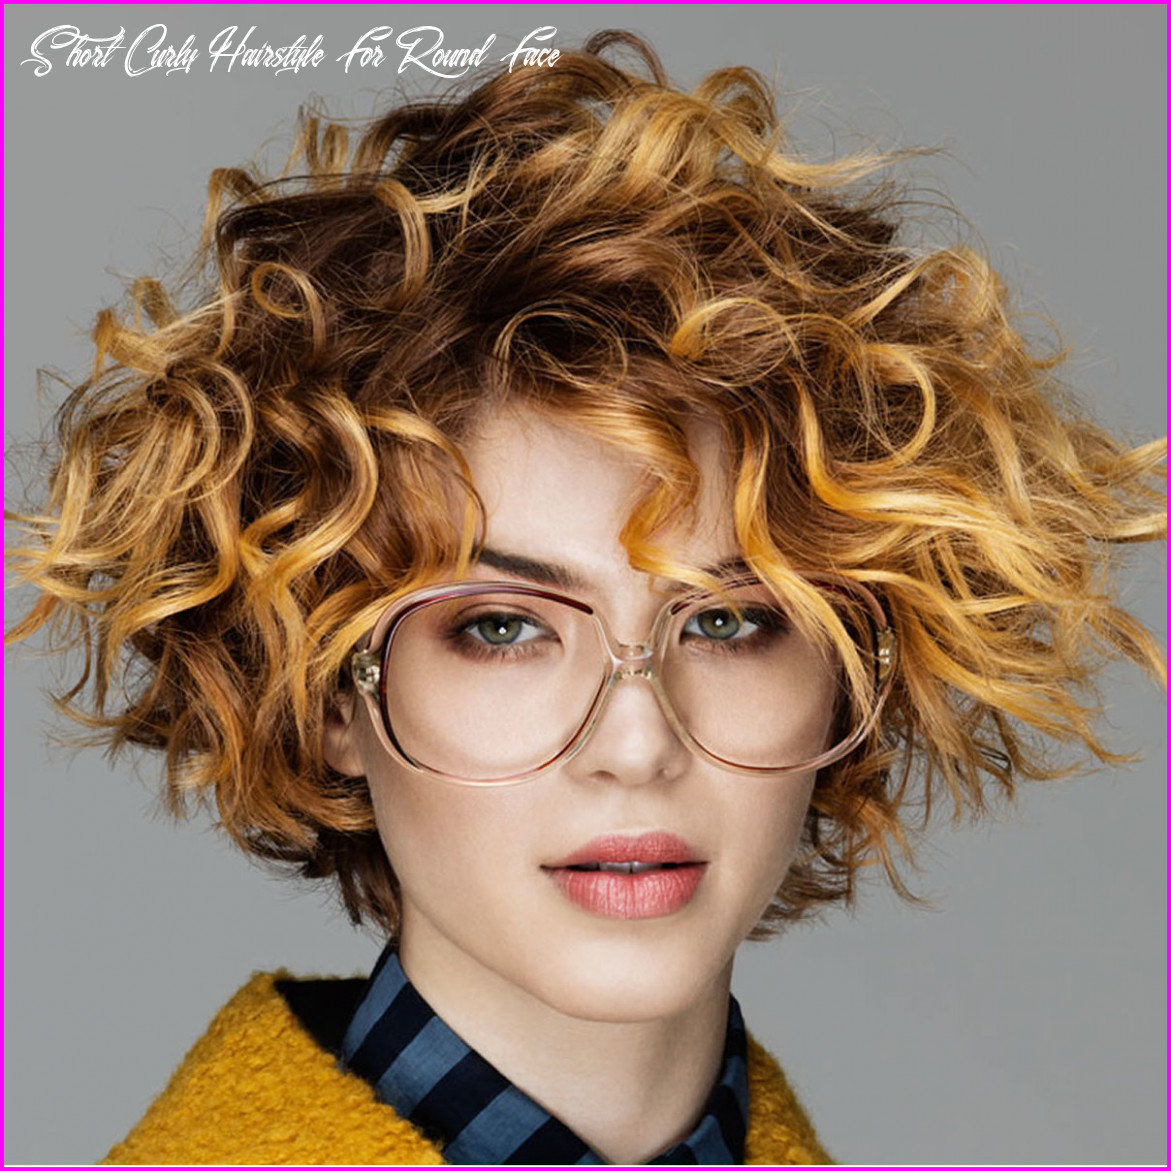 Best short haircuts for curly hair & round face 9 best short